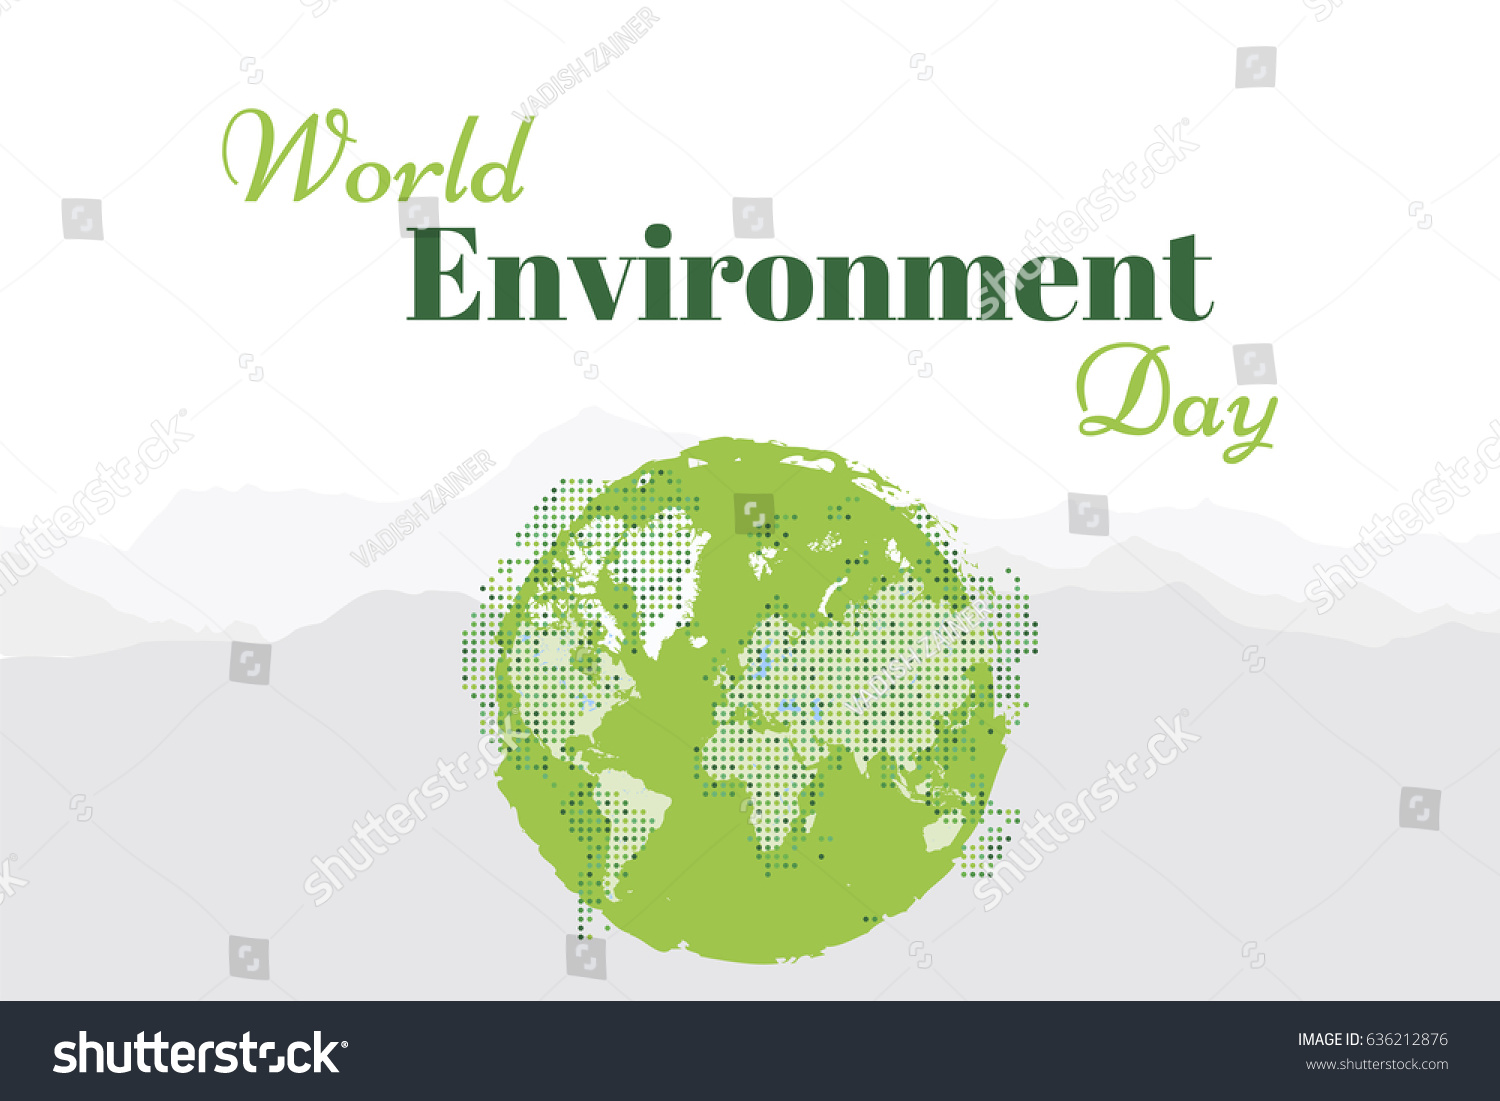 Banner world environment day world map stock vector 636212876 banner world environment day with world map flat vector illustration eps 10 gumiabroncs Images